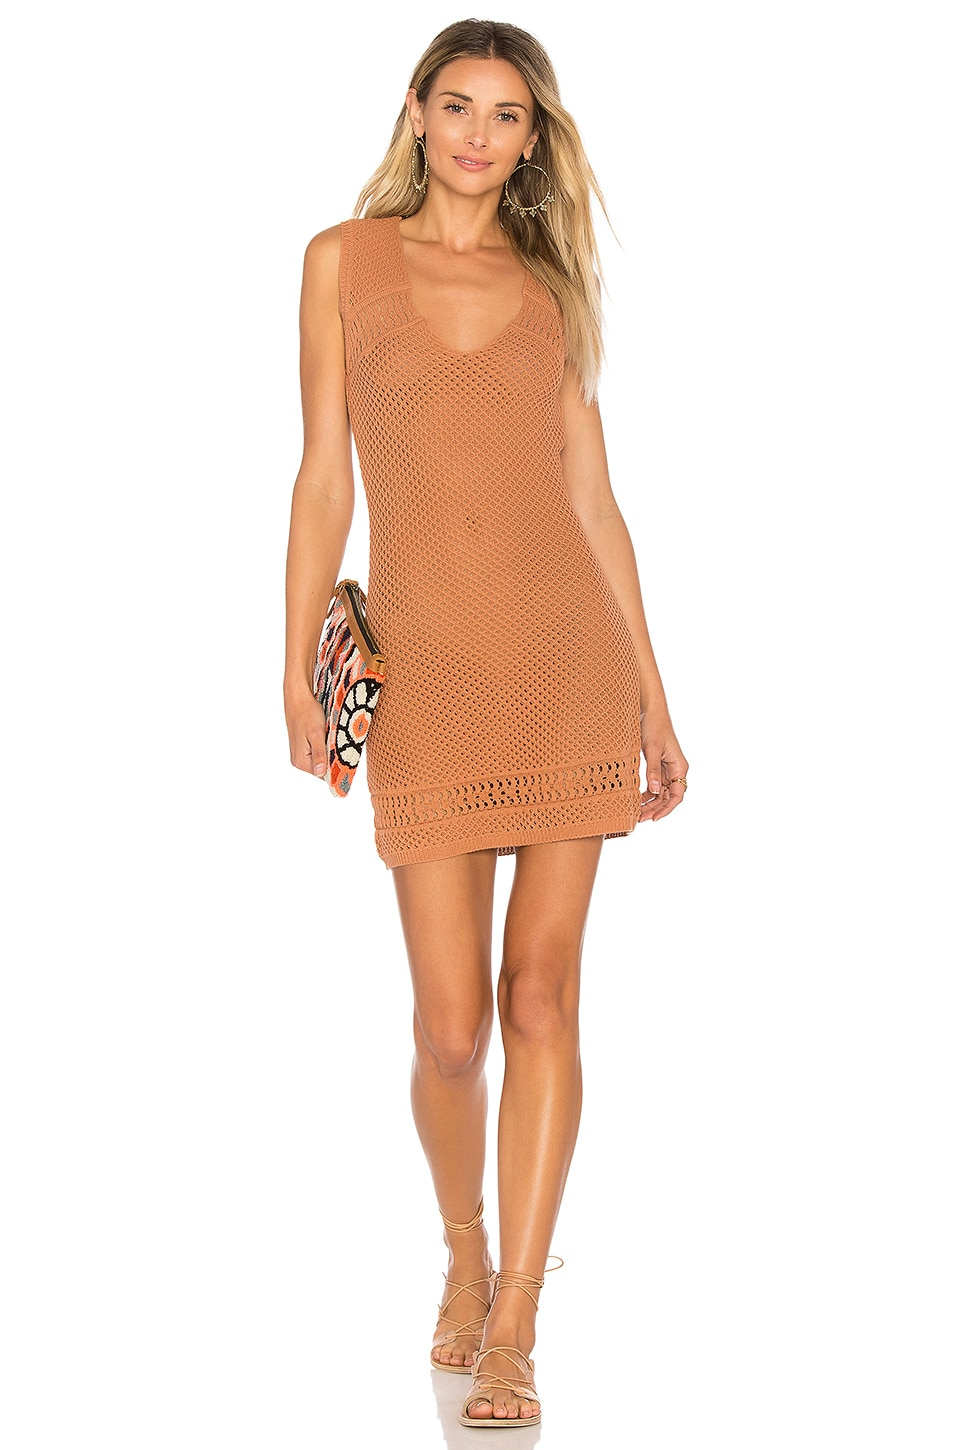 Photo of x REVOLVE Antonia Knit Dress by ale by alessandra dresses